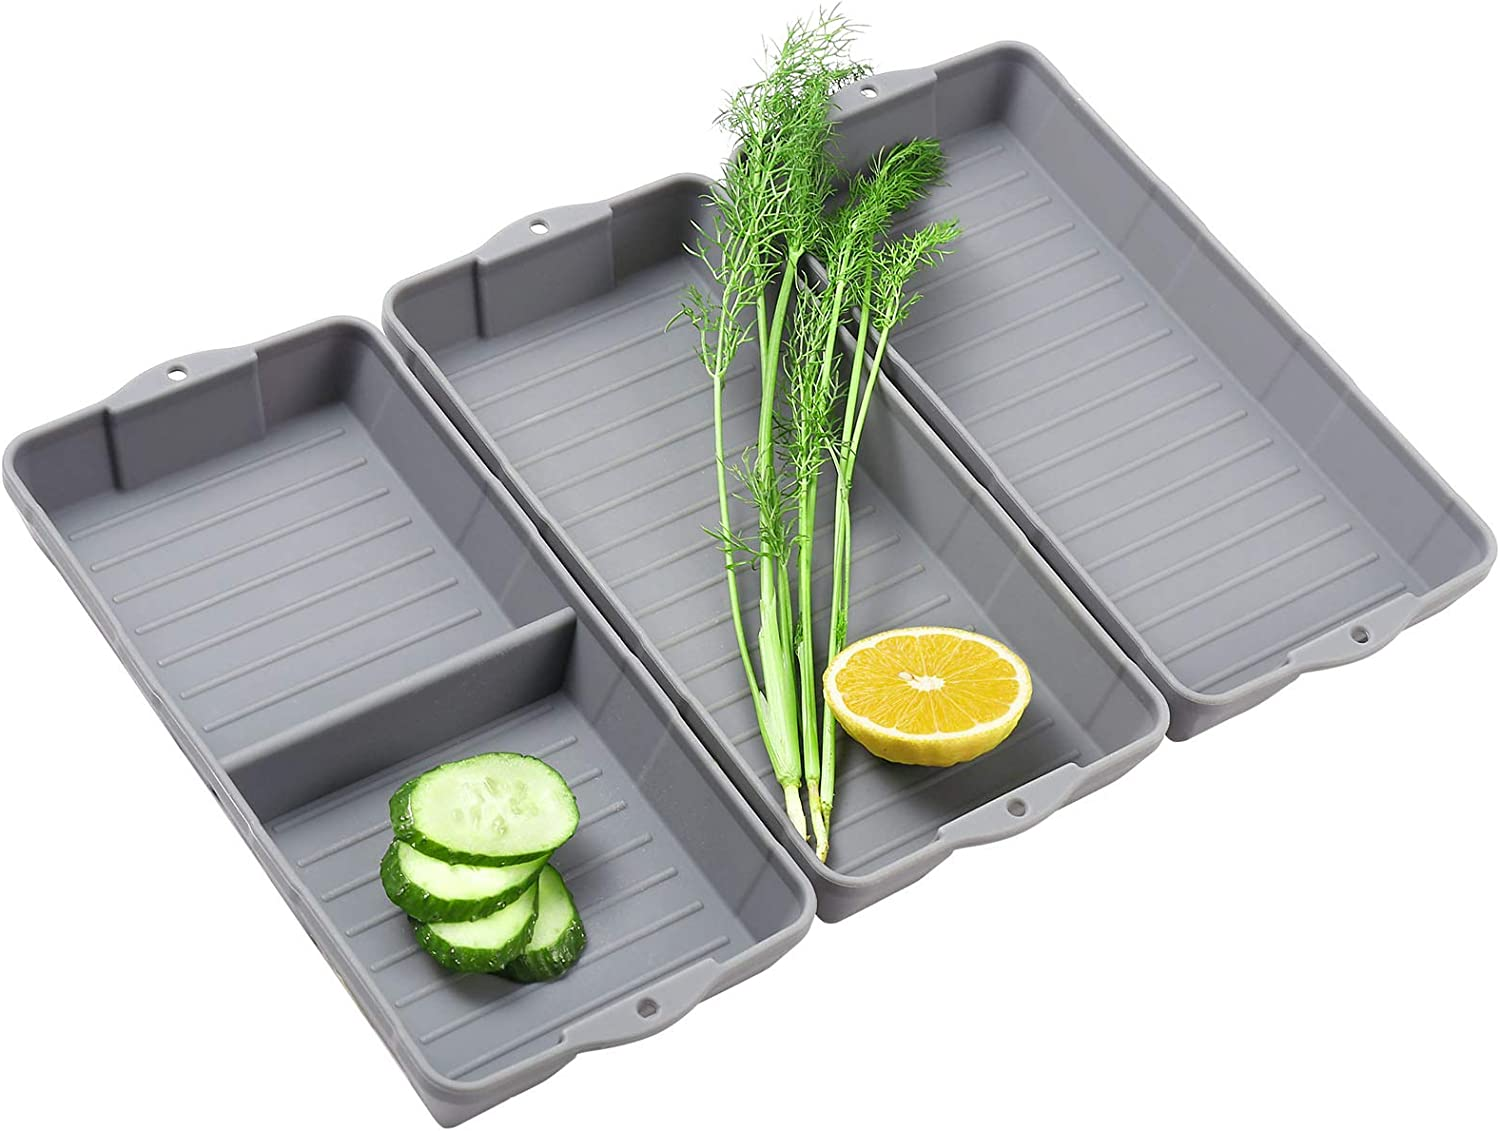 Zip Standing Nonstick Silicone Baking Sheet Pan, Siliconebaking trays Dividers, Suitable for oven, air fryer to simplify cooking, Safe to use and easy to clean.(3 gray))